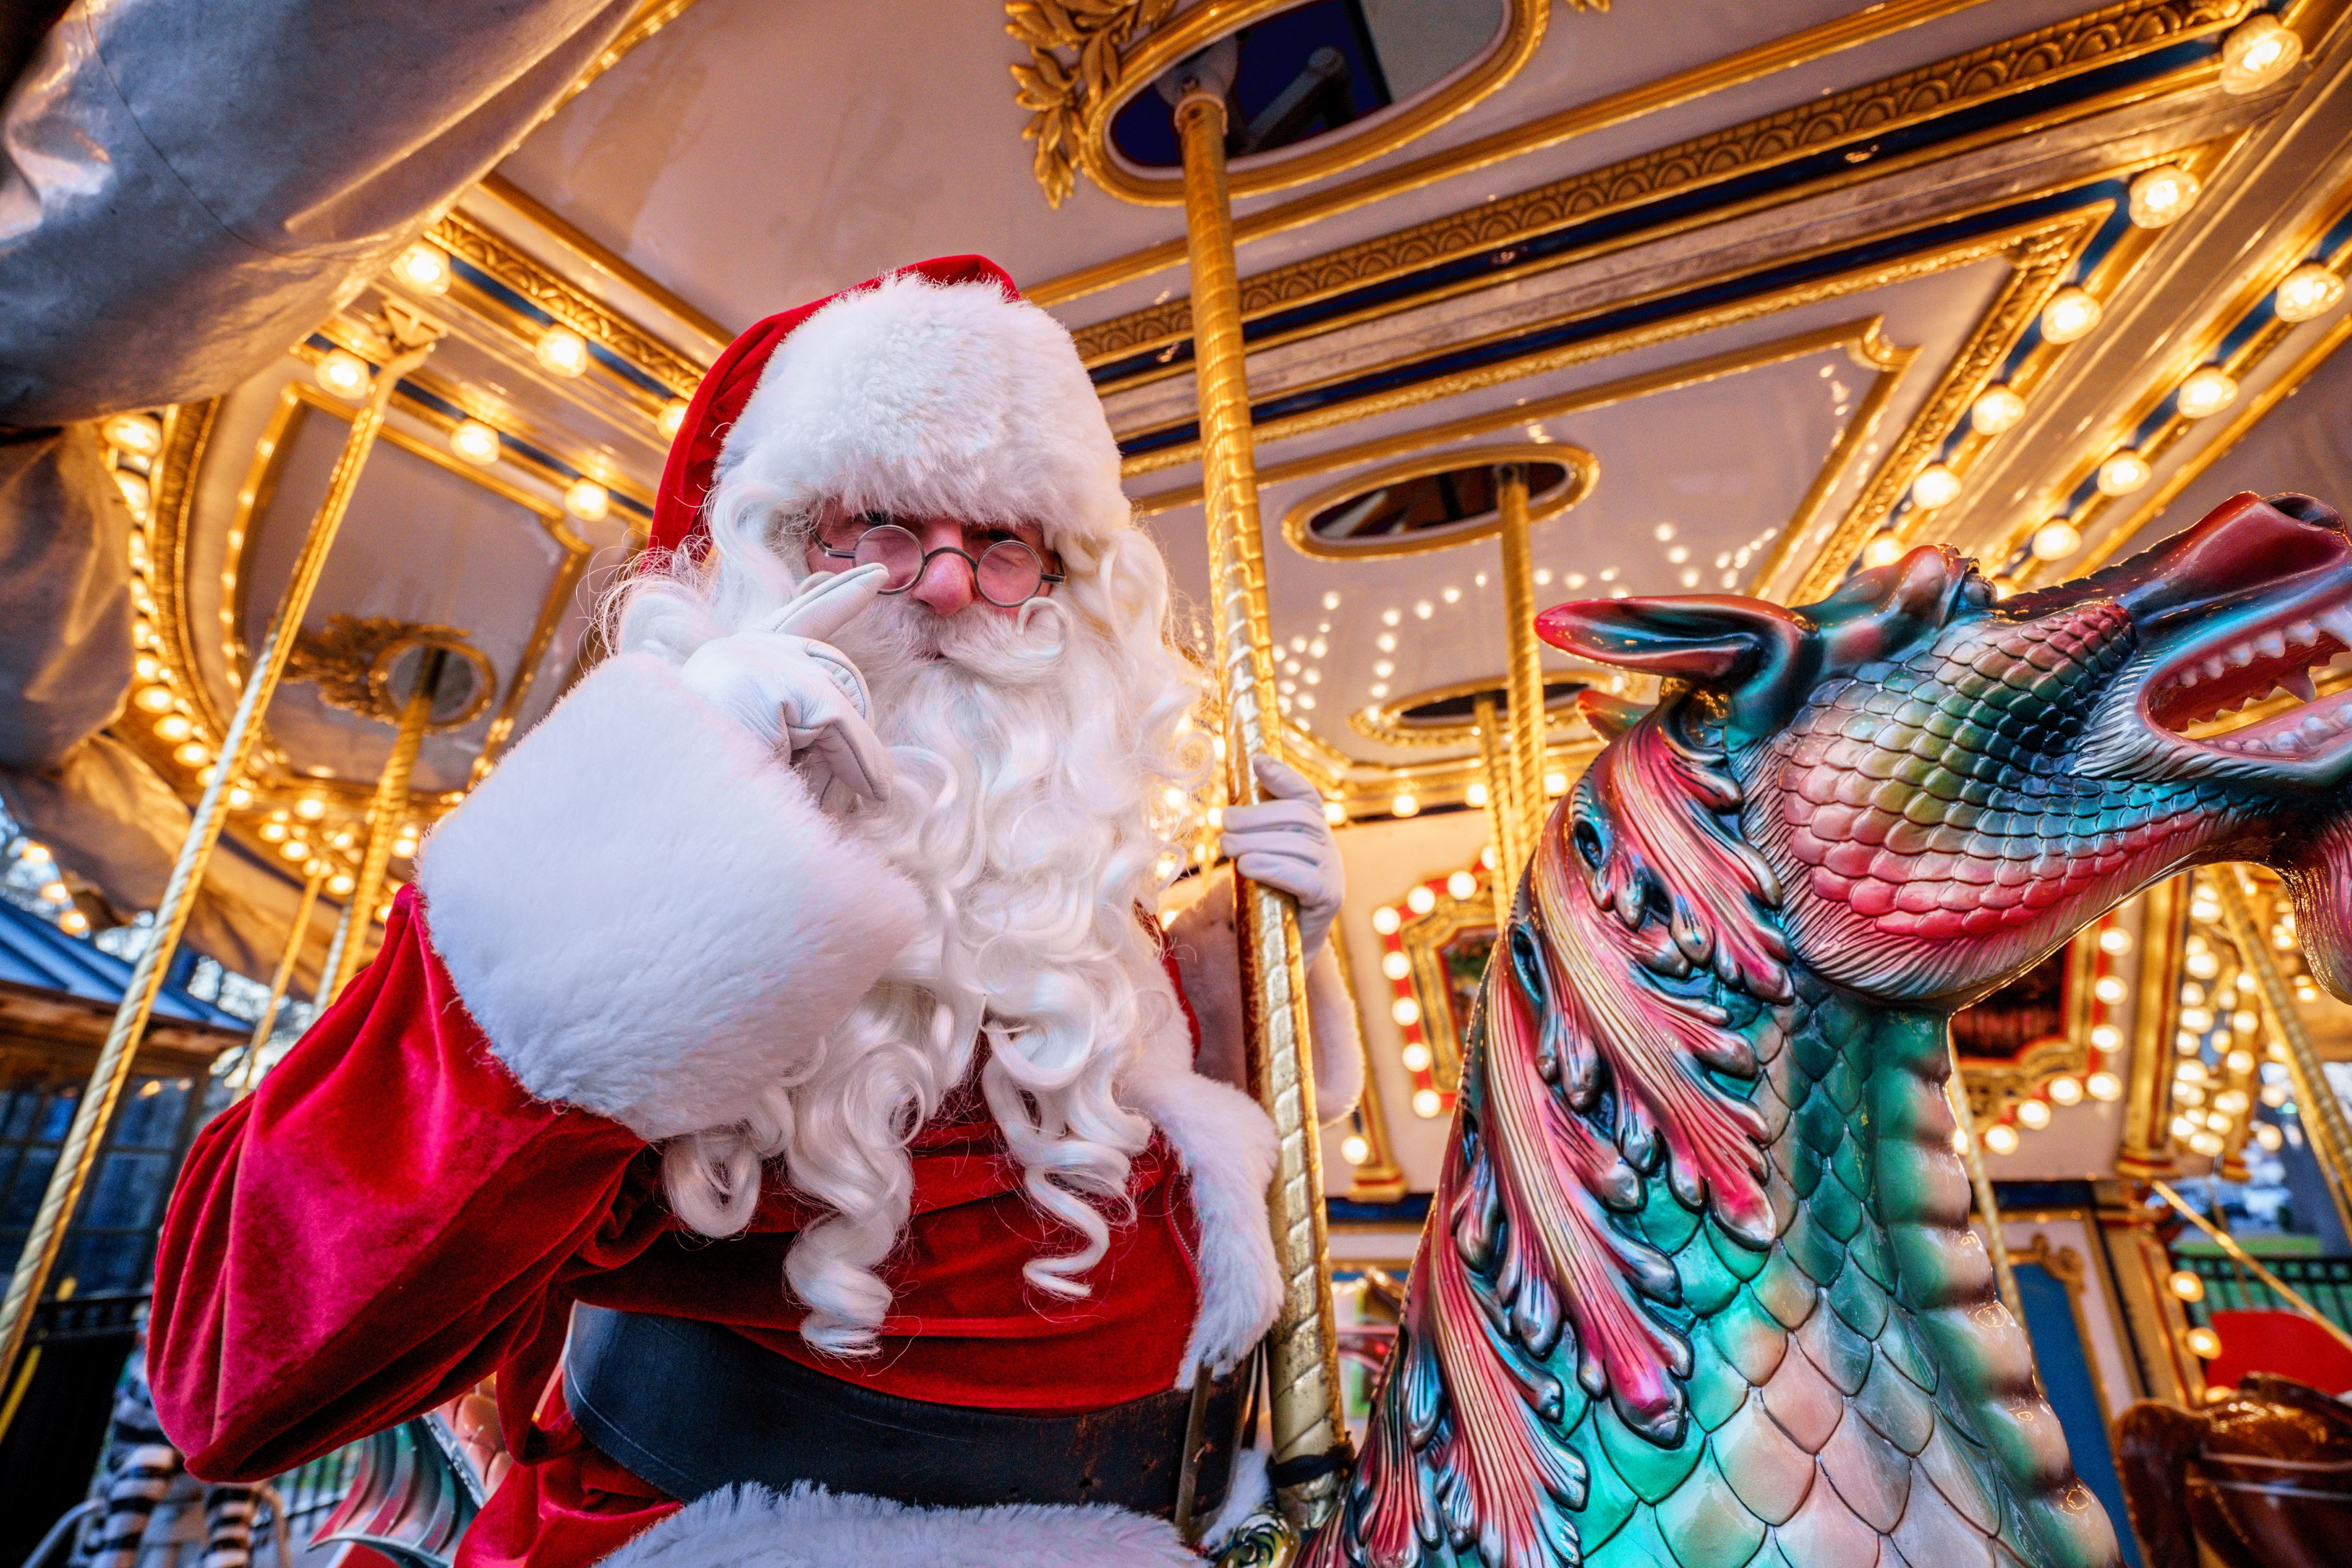 Christmas Eve Bar West Mifflin Pa 2020 Ultimate Pa. Christmas: 19 attractions, activities and